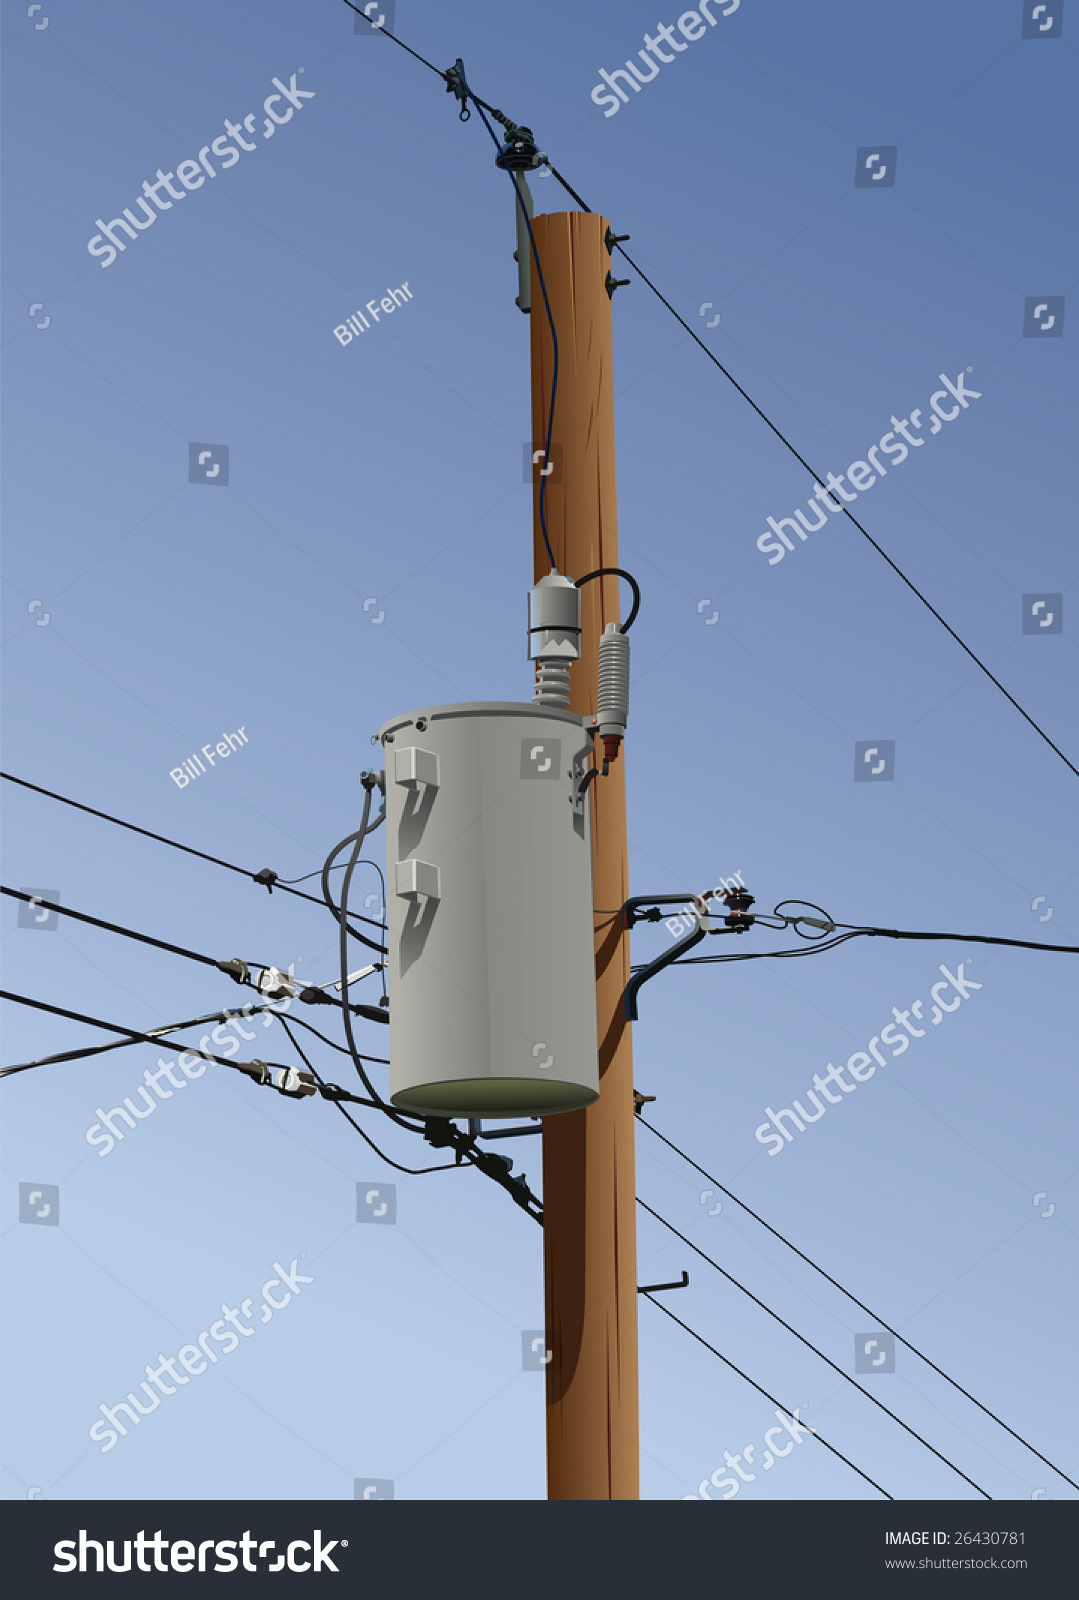 Electrical Utility Pole Transformer Wires Insulators Stock ...